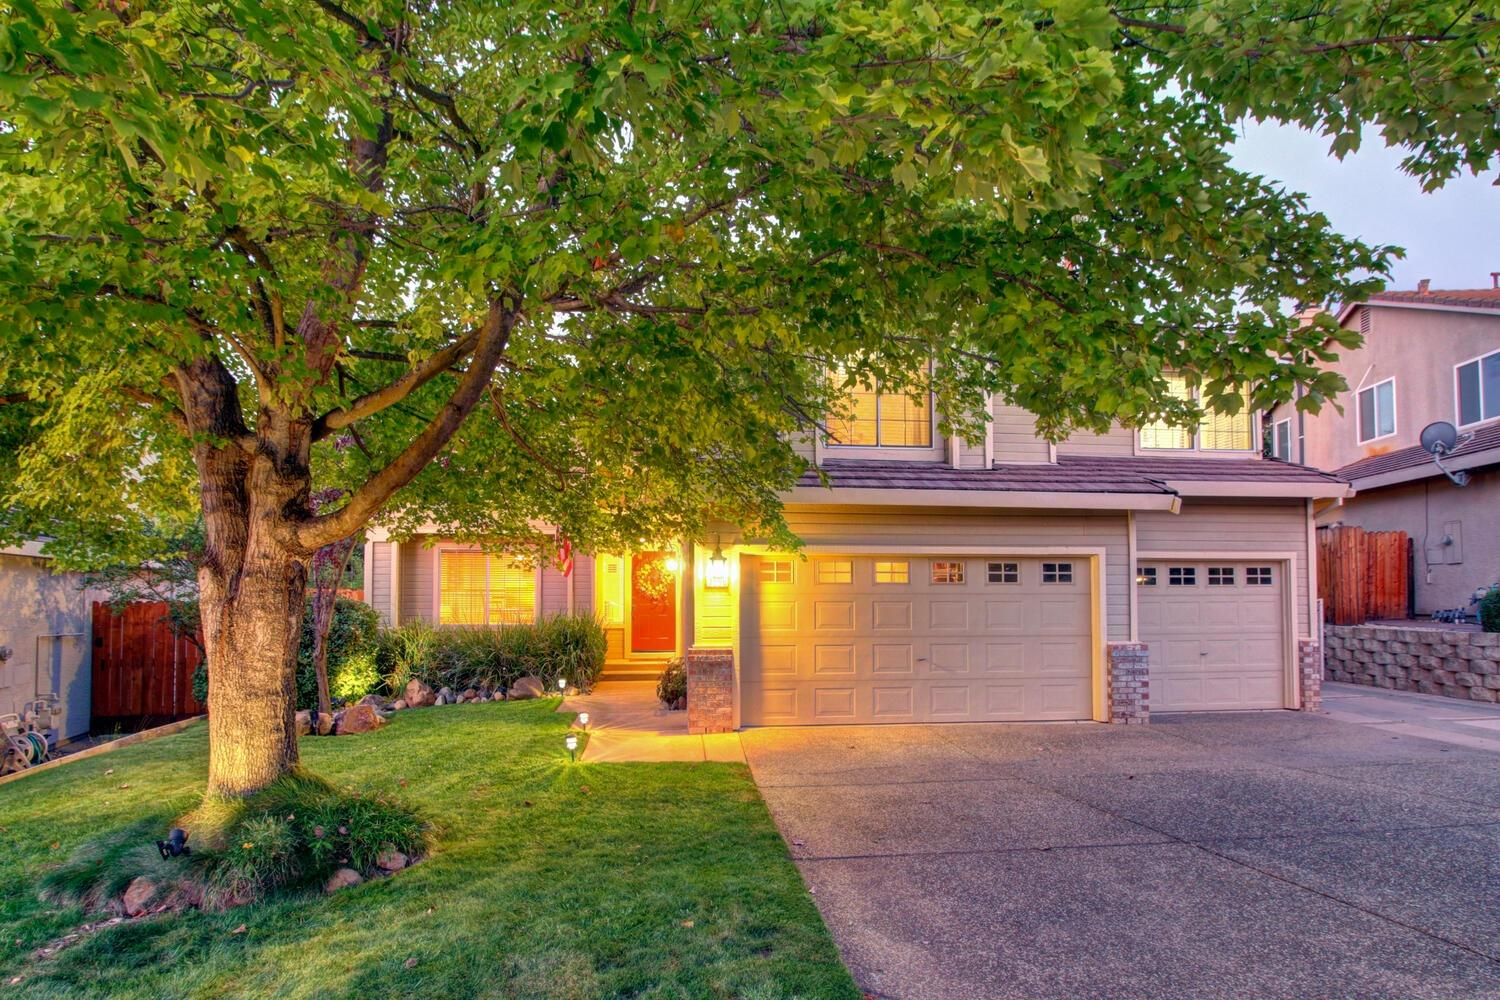 Photo 4 for Listing #221122030